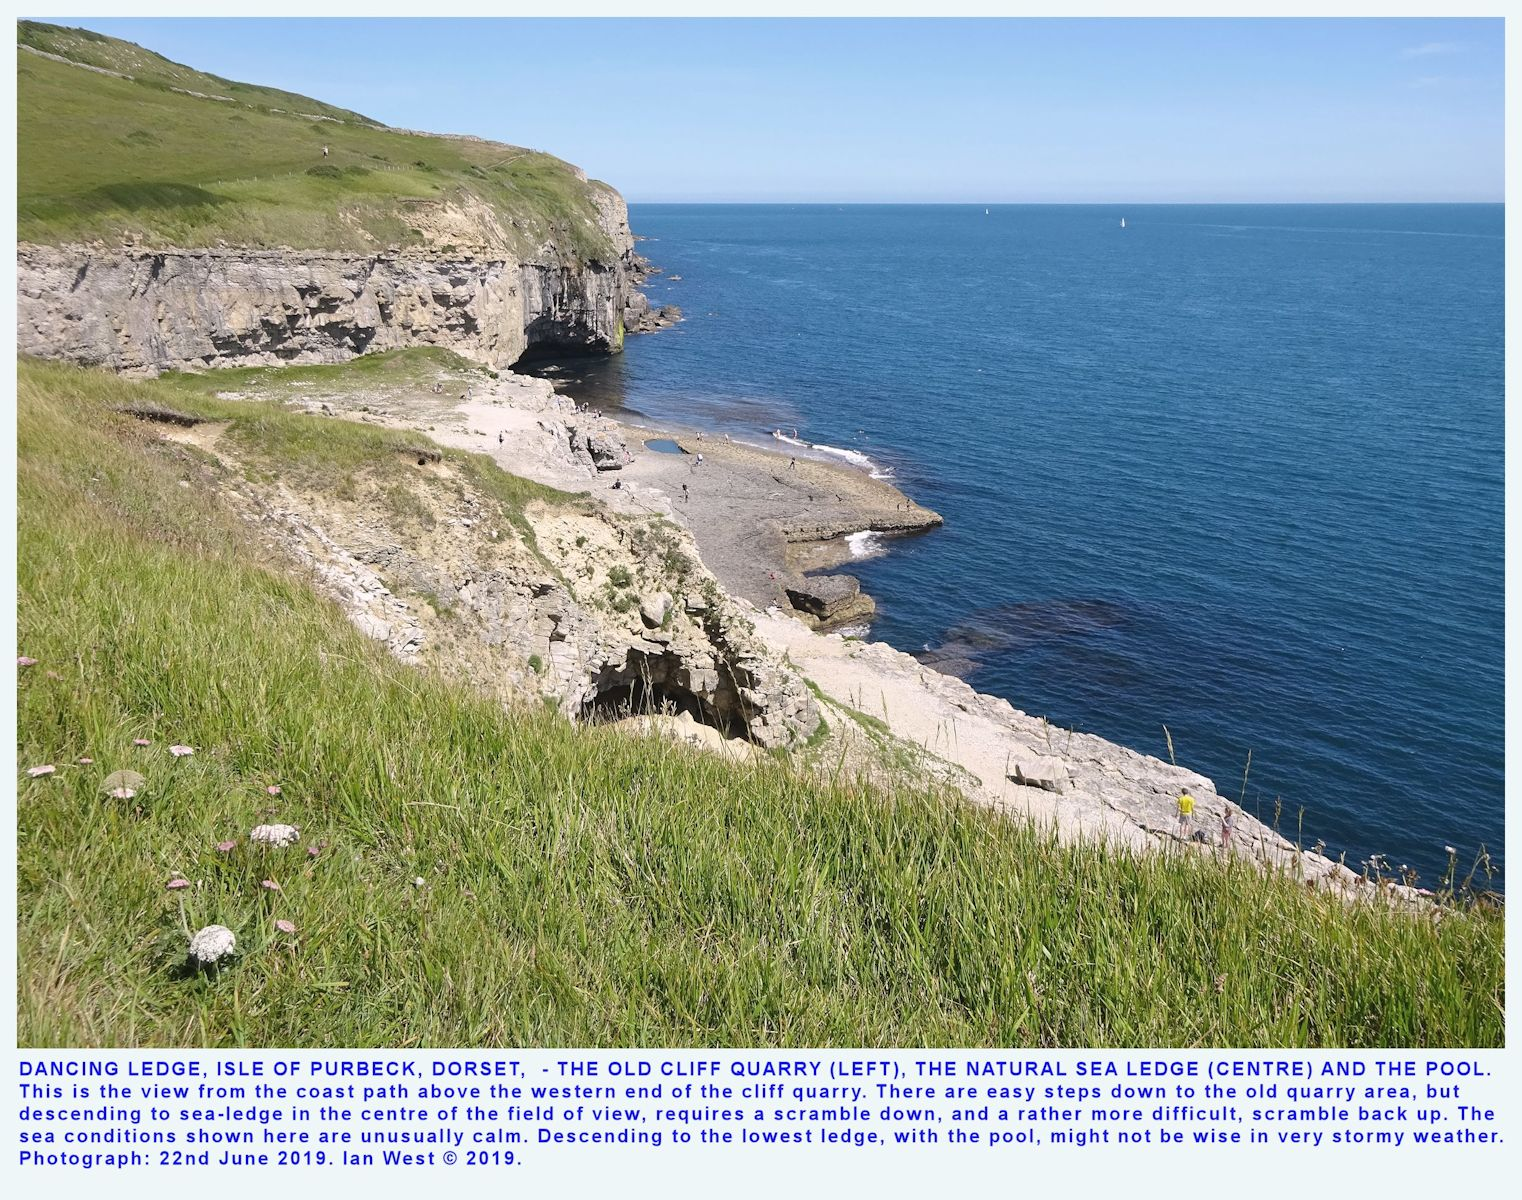 A general overview of Dancing Ledge, or Dark Spring Ledge, with the old quarry, as seen from the coastal footpath, just above the western end, Isle of Purbeck, Dorset, calm weather, 22nd June, 2019, by Ian West